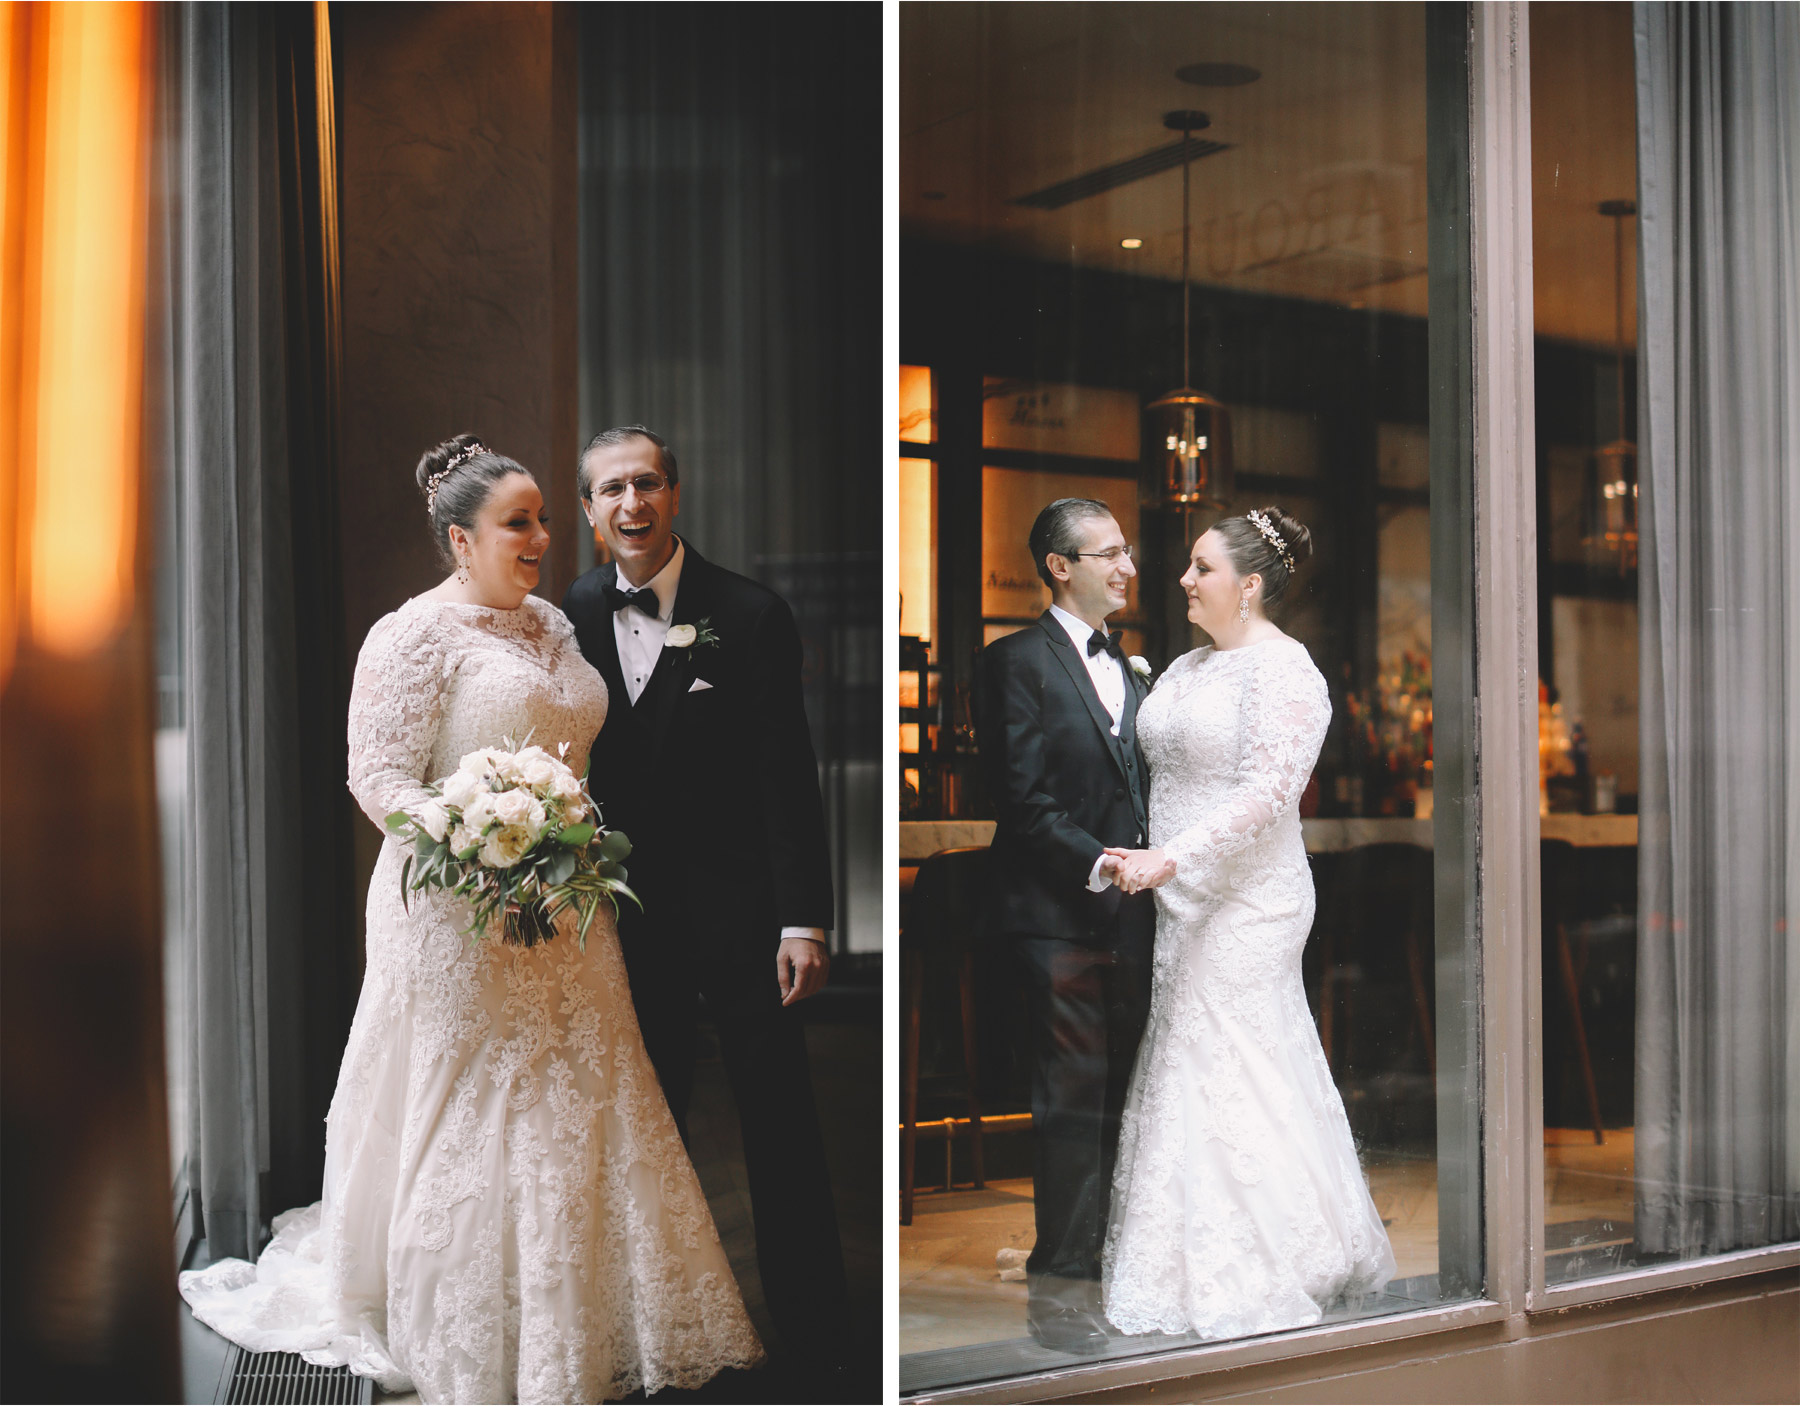 03-Minneapolis-Minnesota-Wedding-Photography-by-Vick-Photography-The-Marquette-Hotel-IDS-Center-Anja-and-Waseem.jpg